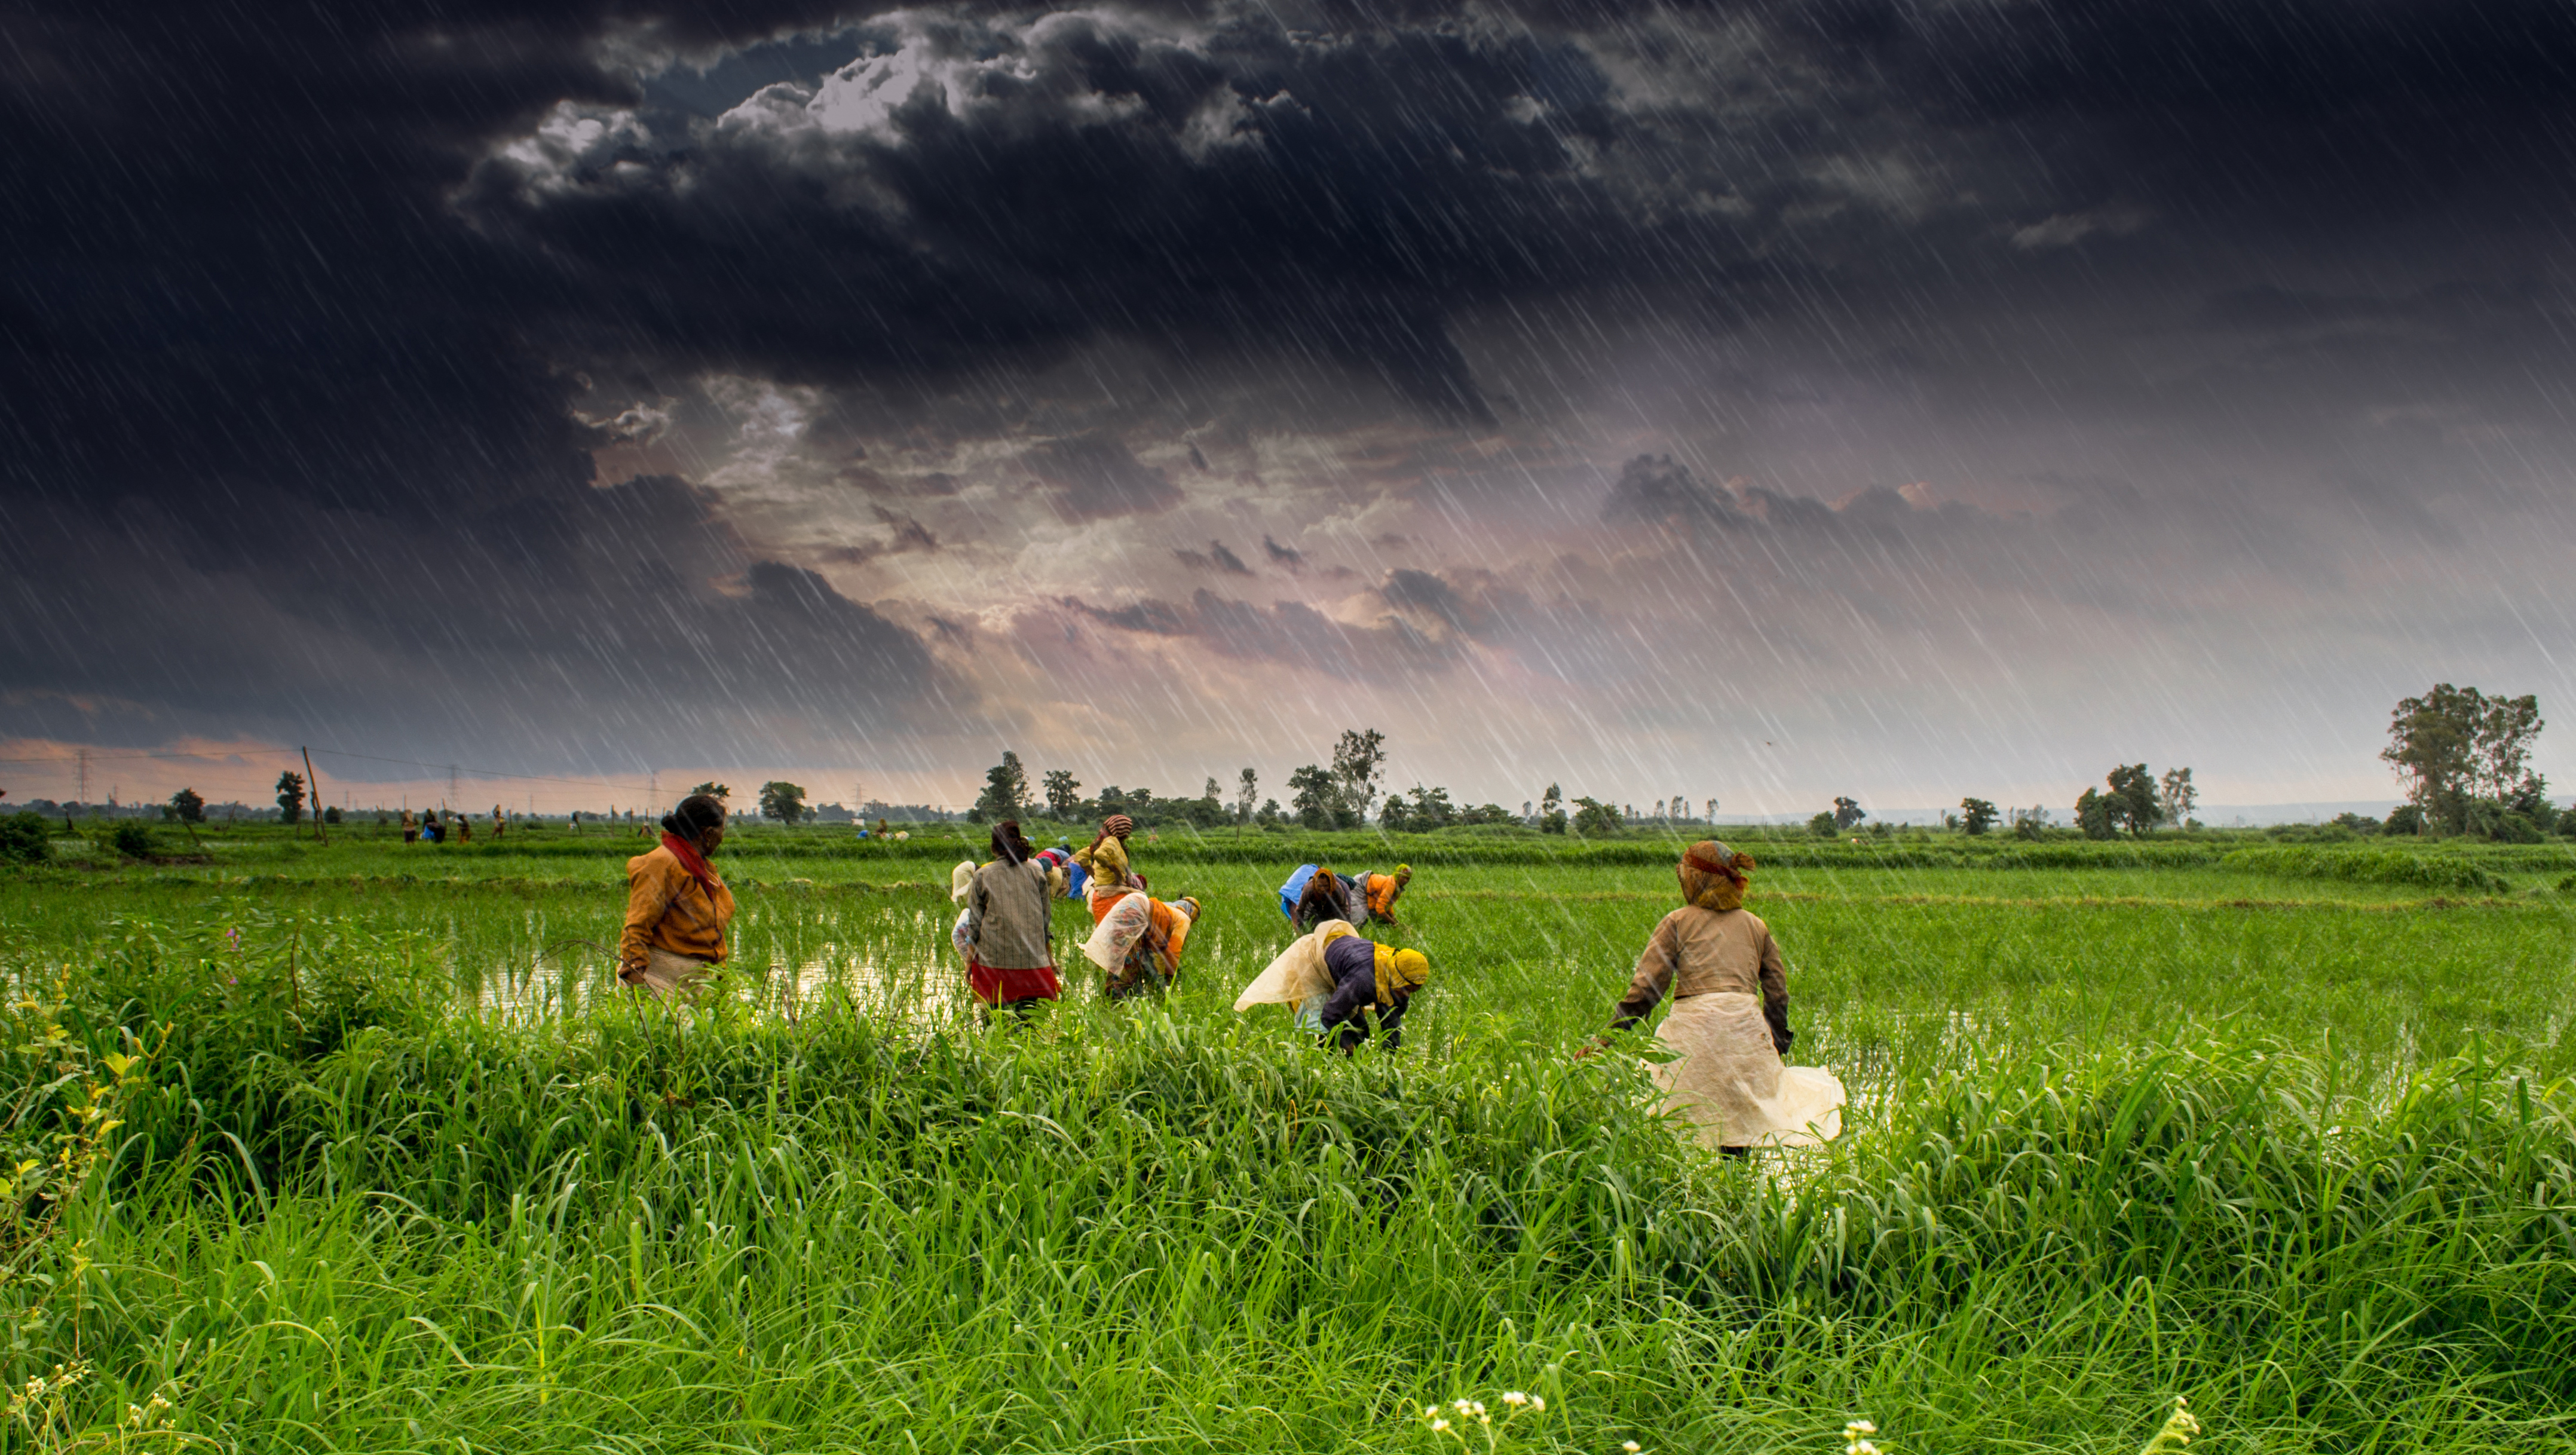 Explainer: India's Farm Laws Drive Wedge Between Farm Workers and Authorities